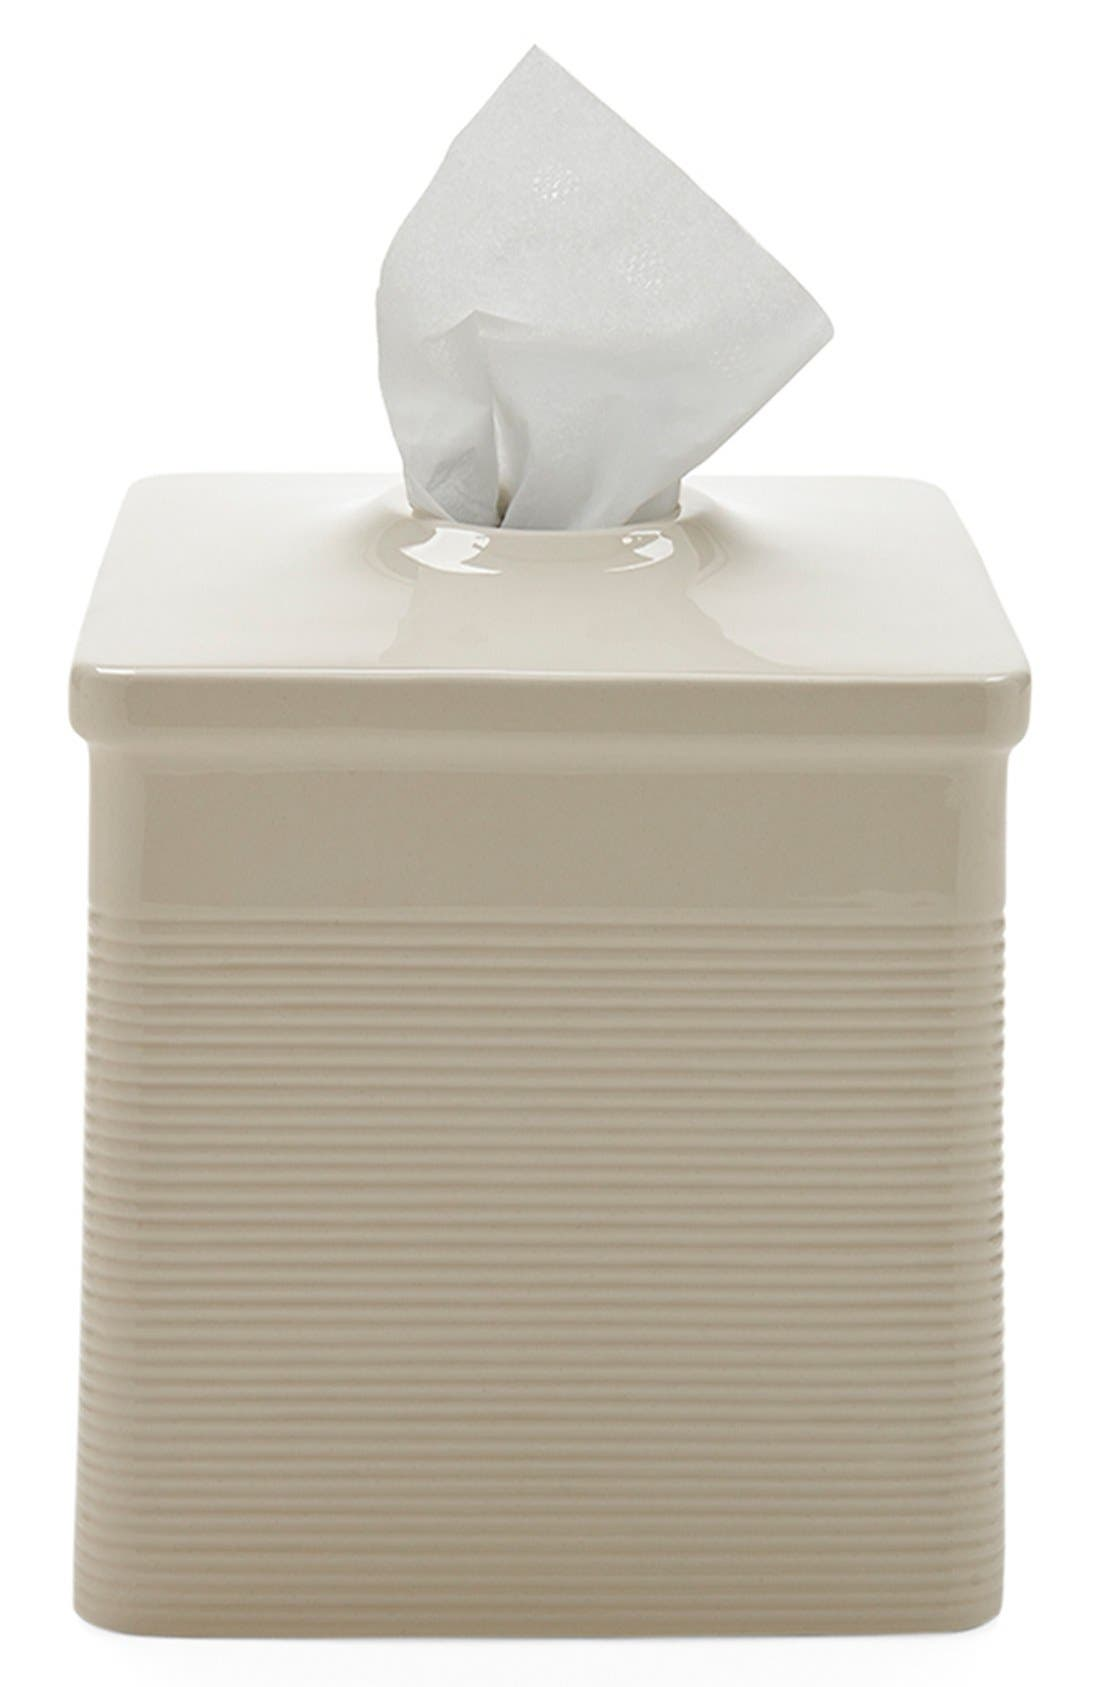 Main Image - Waterworks 'Earth' Tissue Box Cover (Online Only)